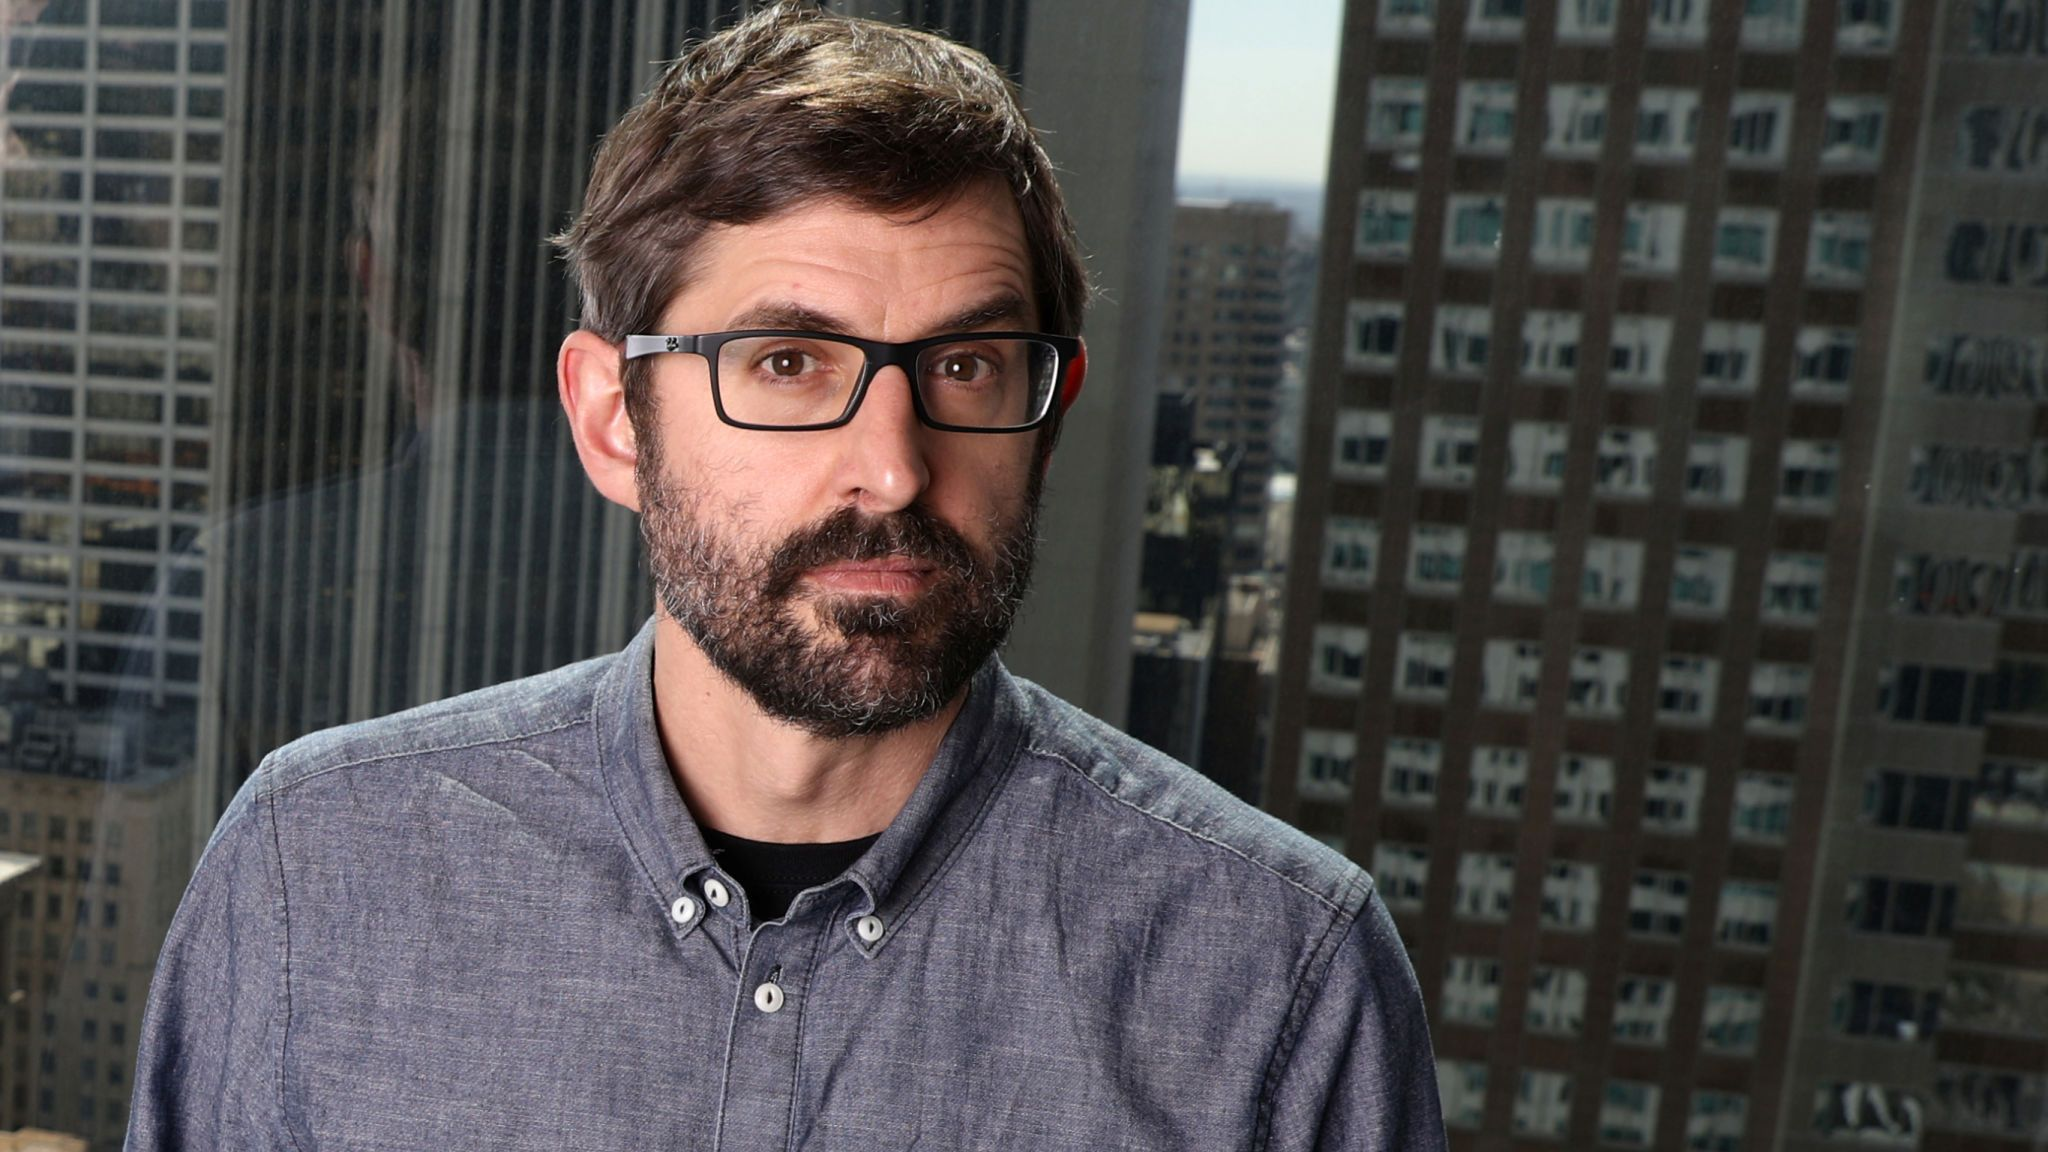 Louis Theroux, writer and star of documentary